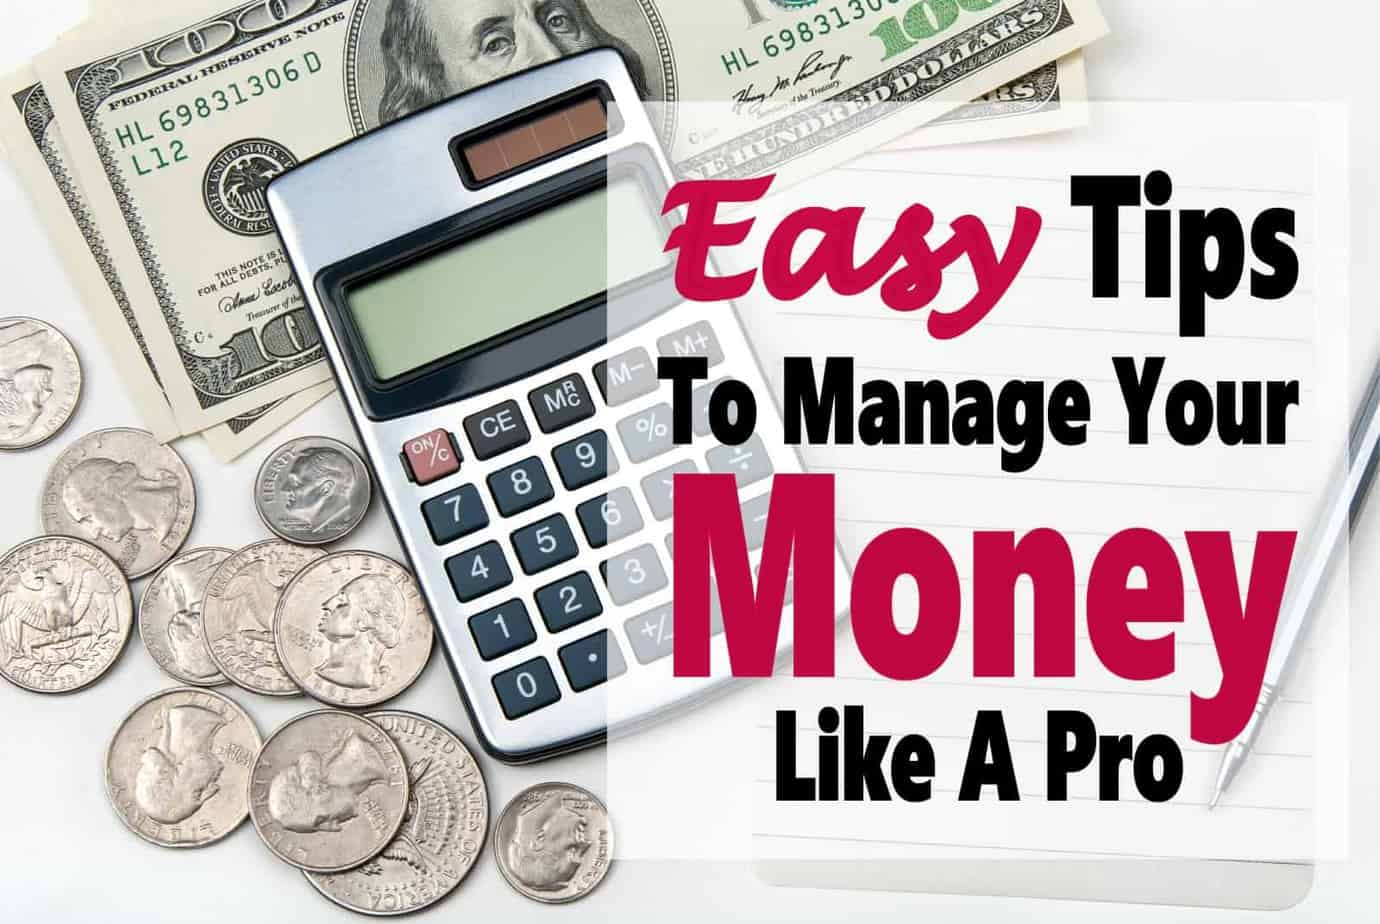 Easy-Tips-To-Manage-Your-Money-Like-A-Pro-1.jpg